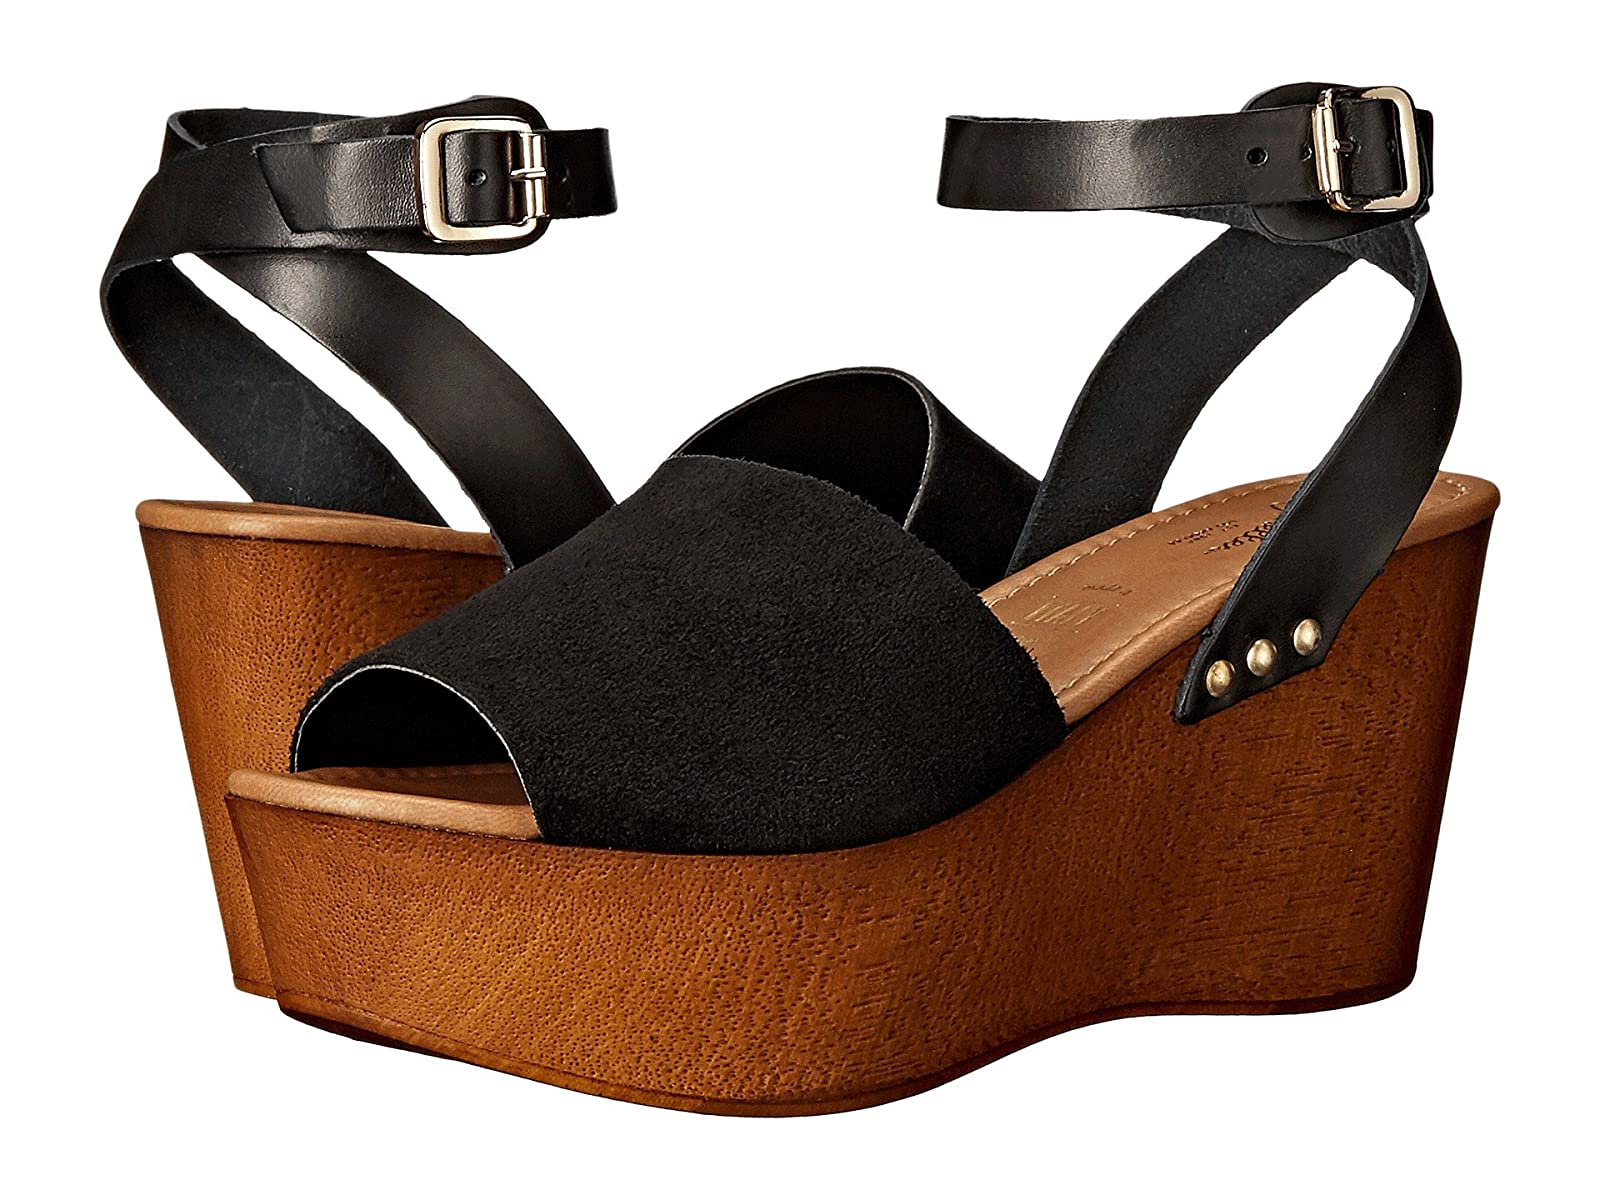 Seychelles ForwardCheap and distinctive eye-catching shoes